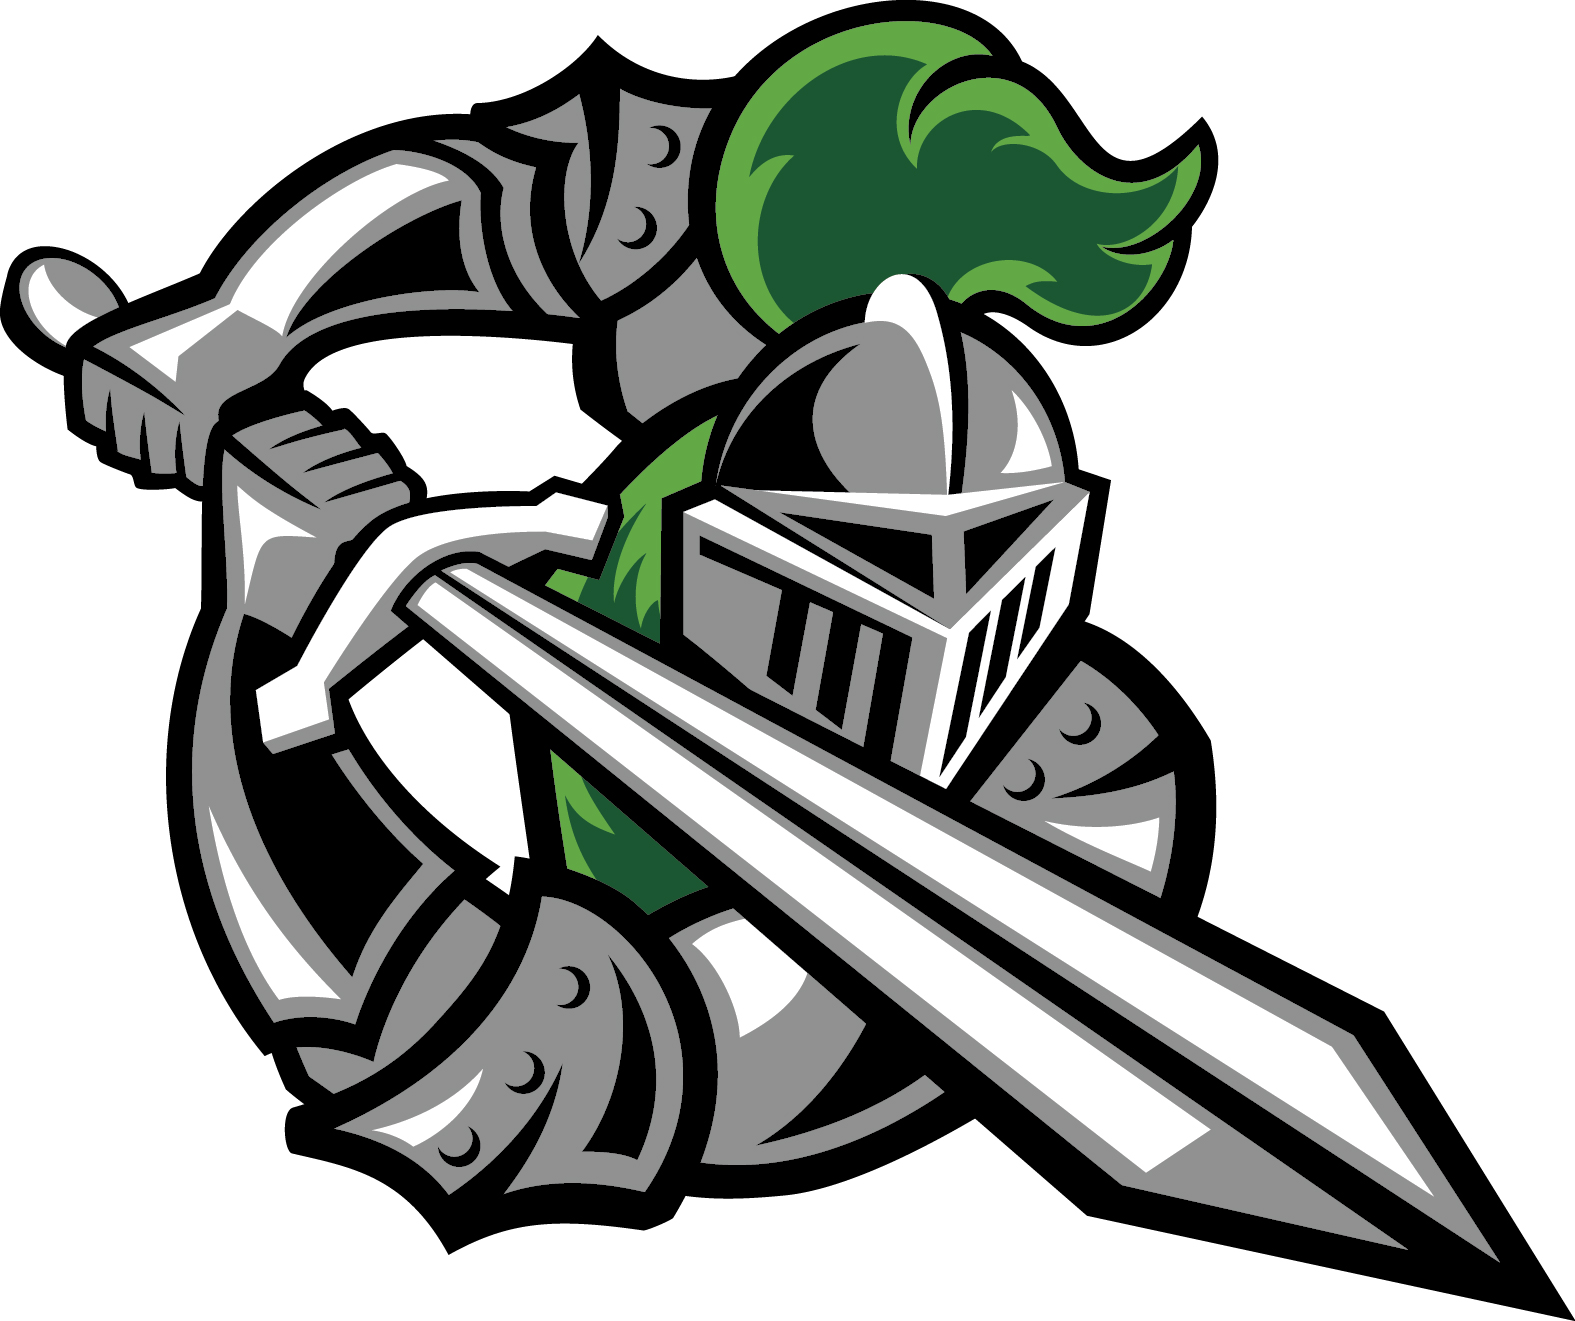 KNIGHTS OPEN SEASON WITH SWEEP OF FOLSOM LAKE